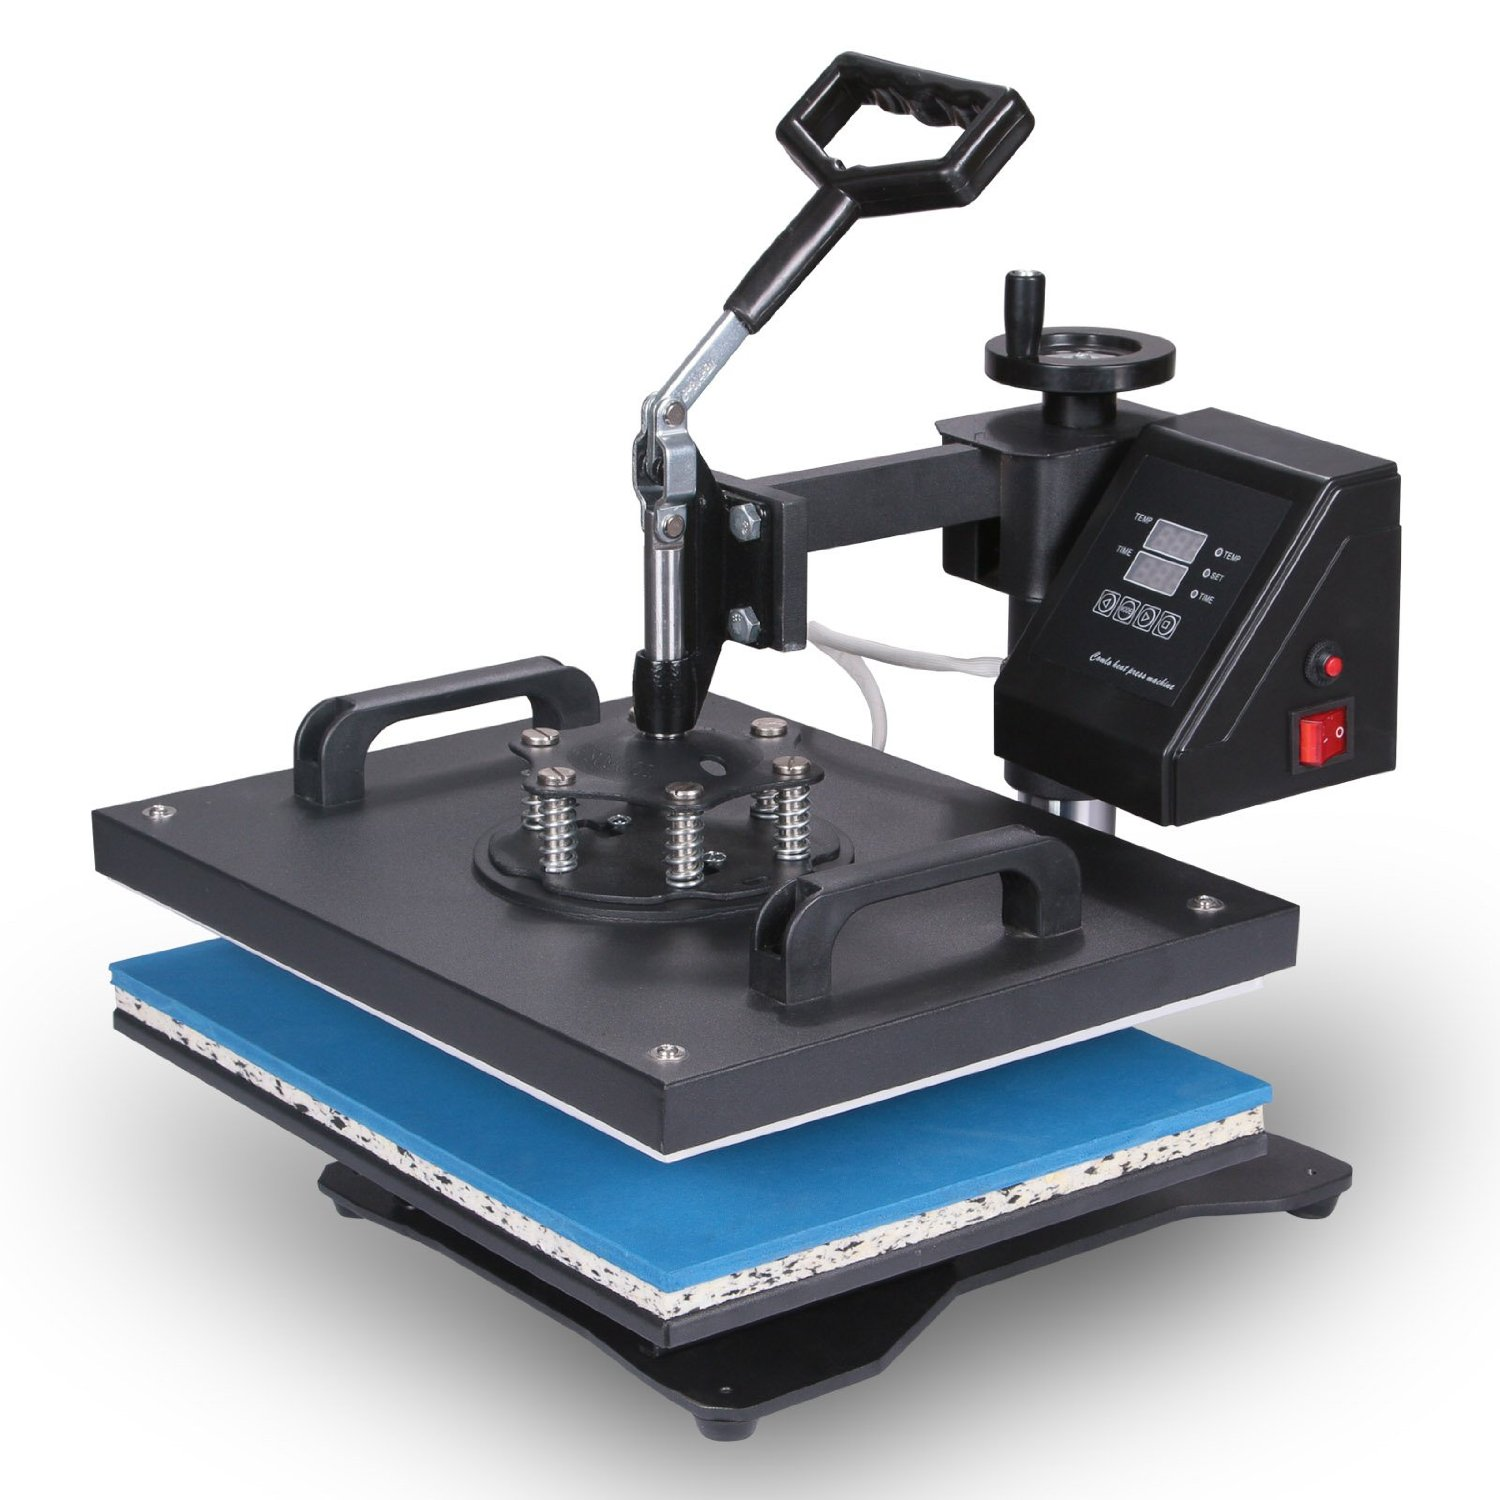 Top 3 heat press machines of this year